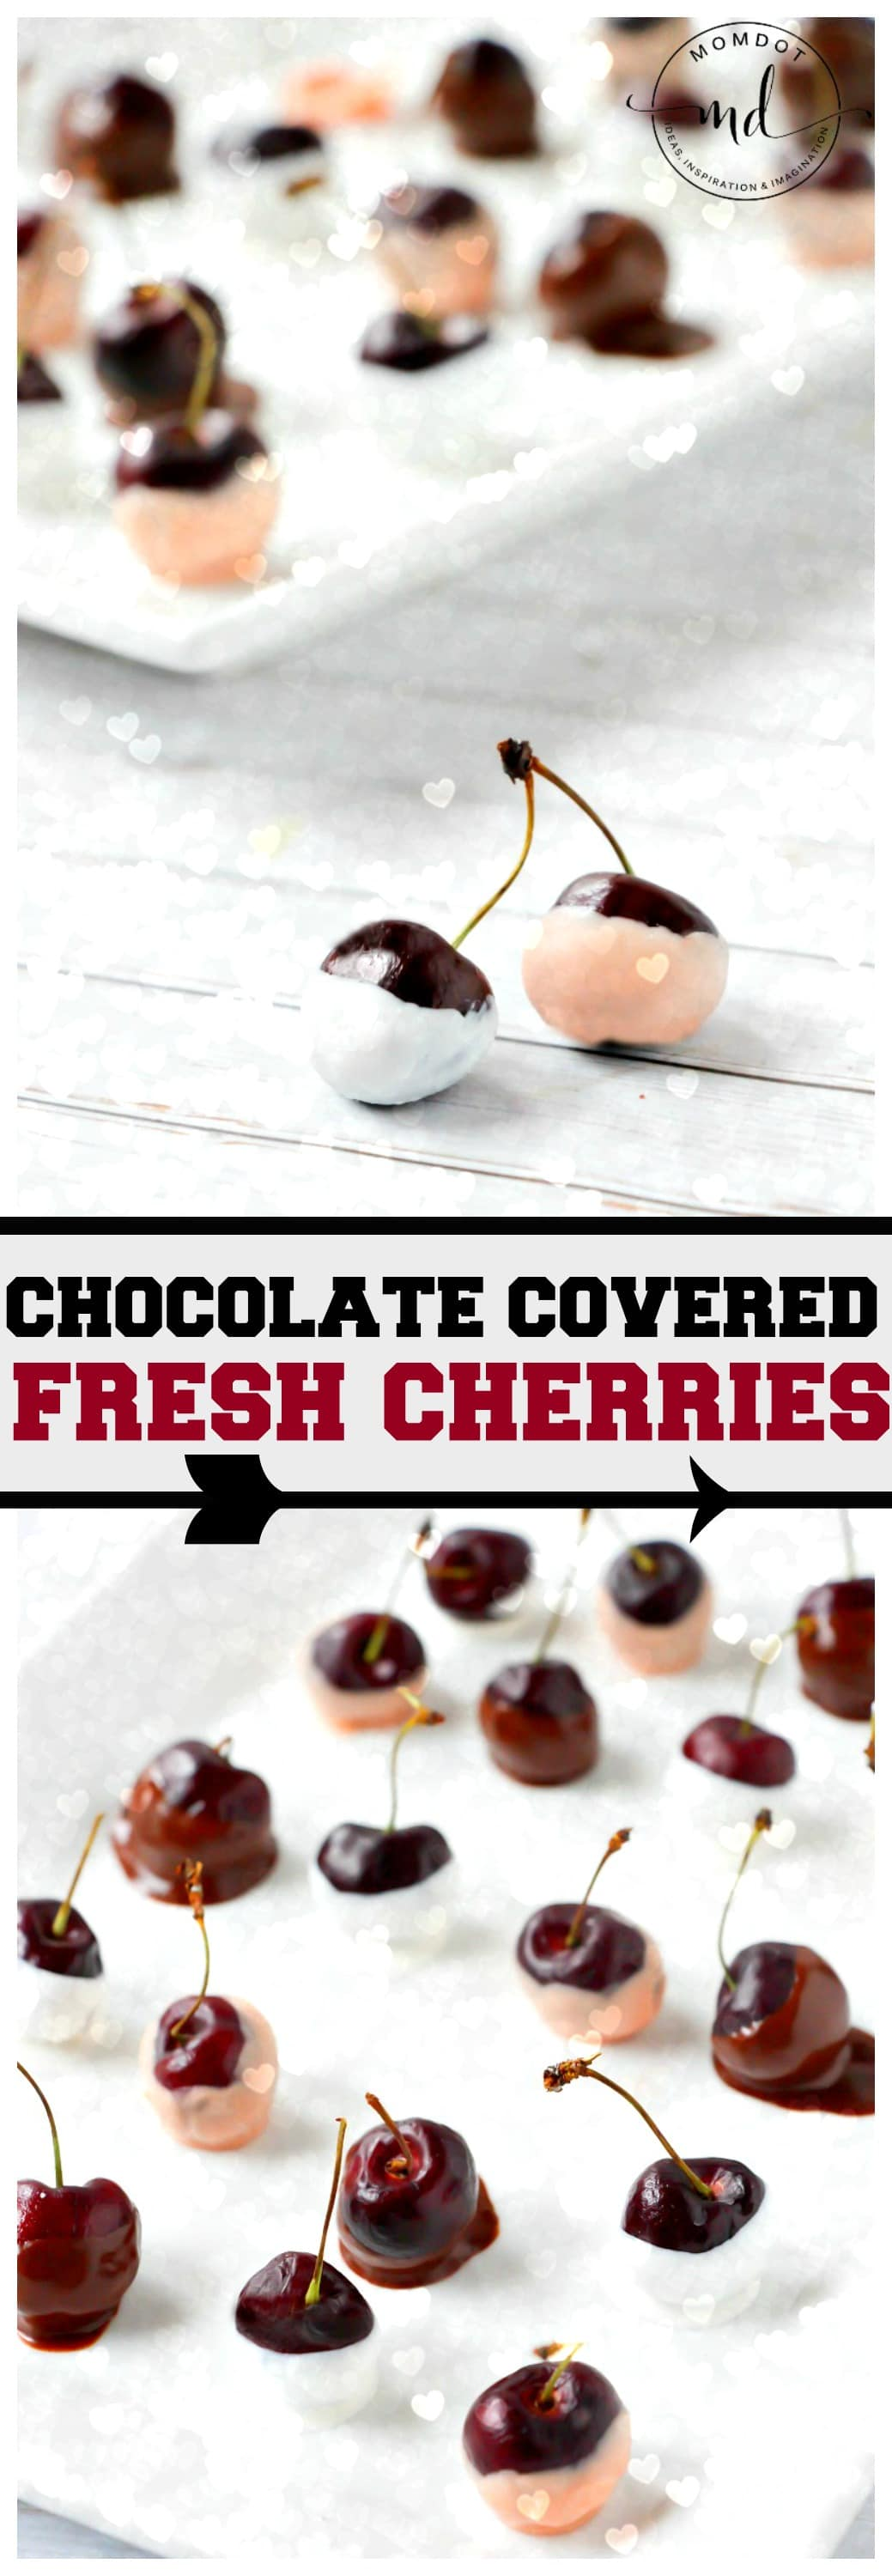 Chocolate Covered Fresh Cherries, how to take out cherry pits and stems and what chocolate to use for this tasty treat